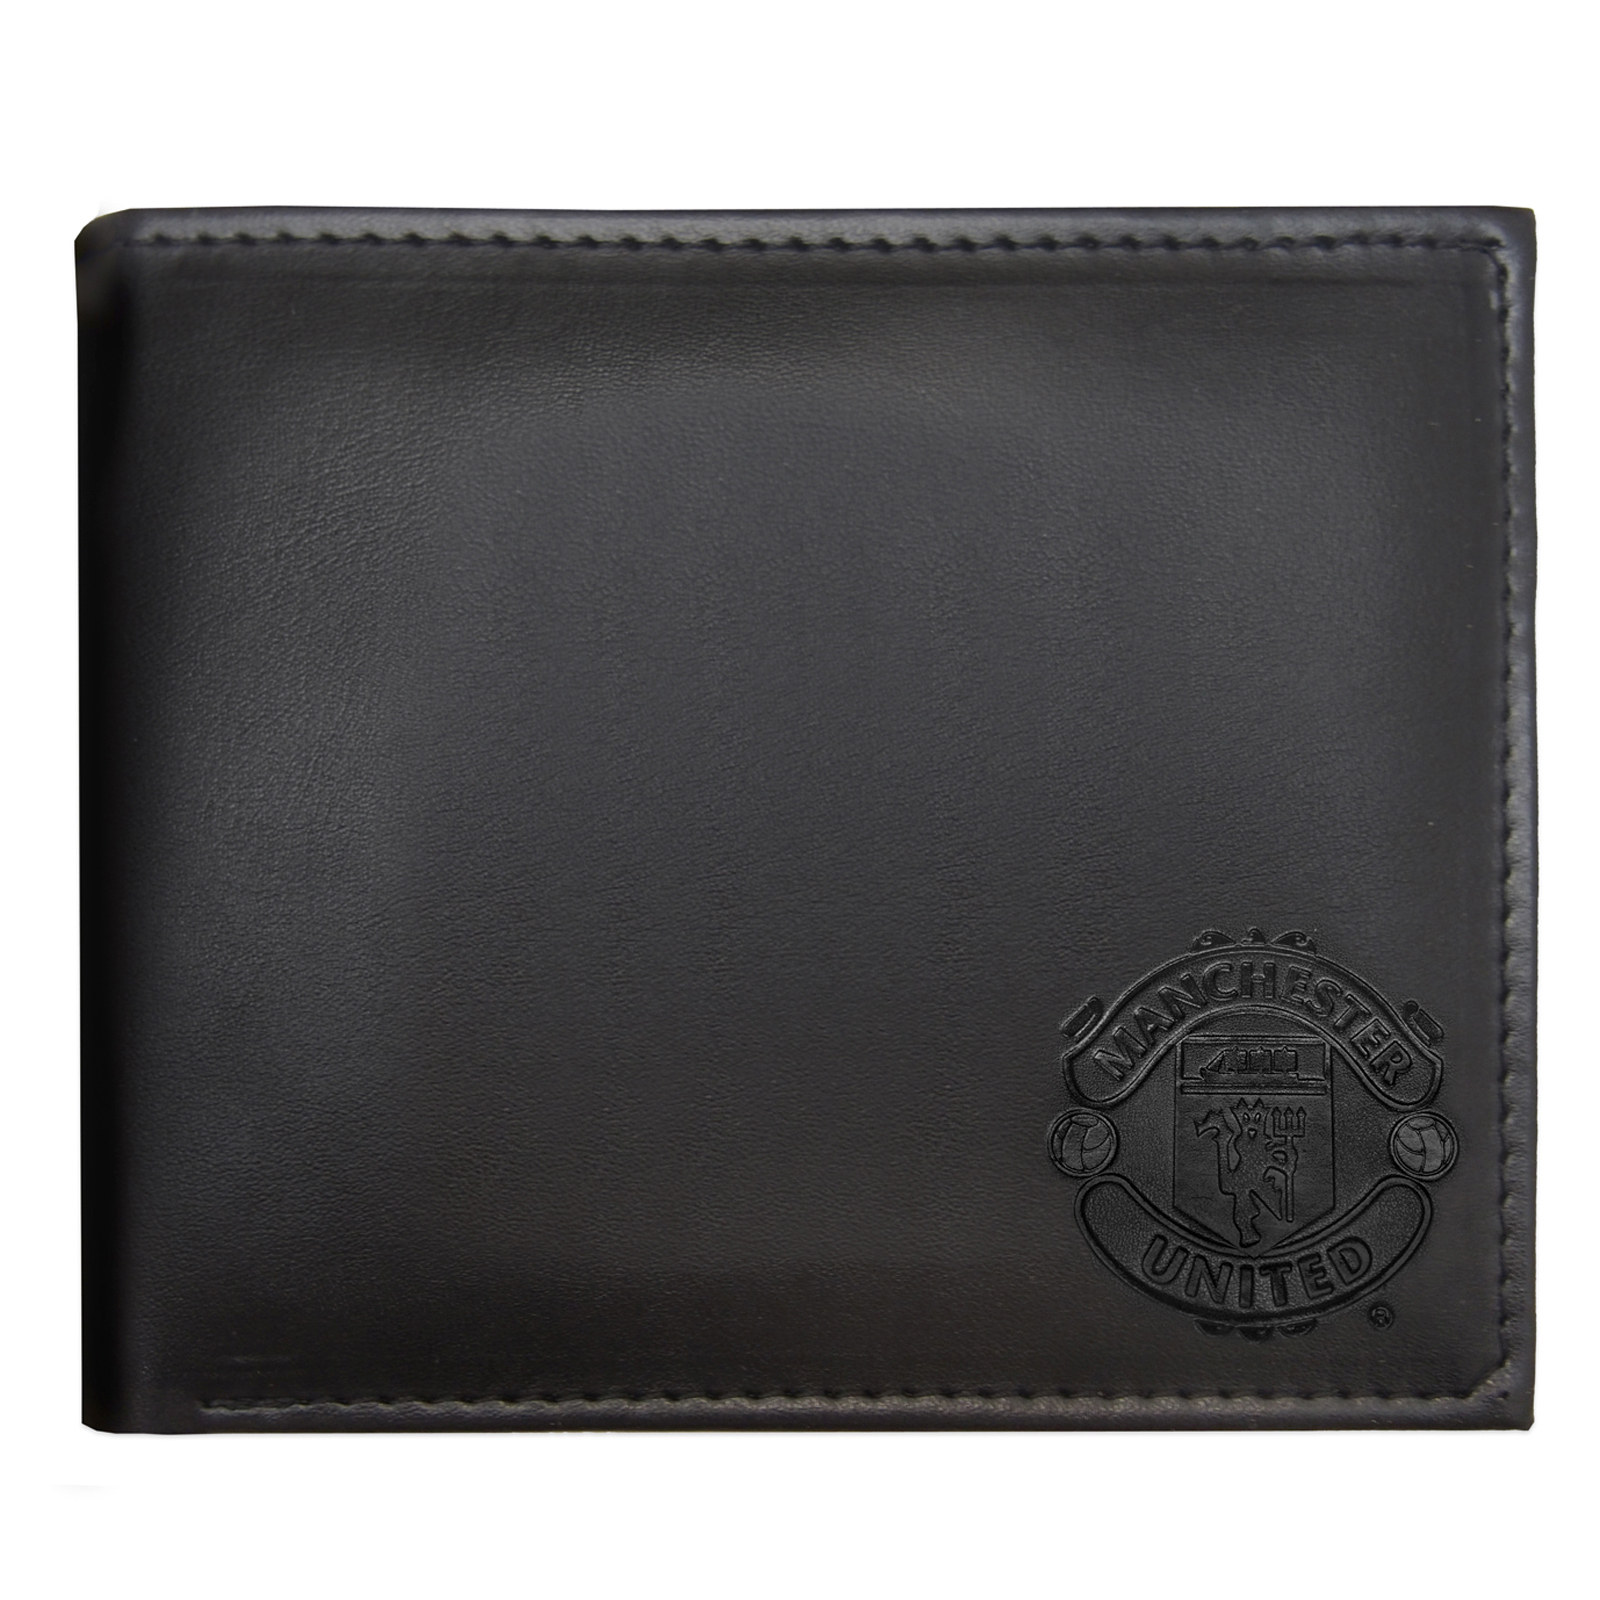 Manchester-United-FC-Official-Football-Gift-Embossed-Crest-Wallet thumbnail 6